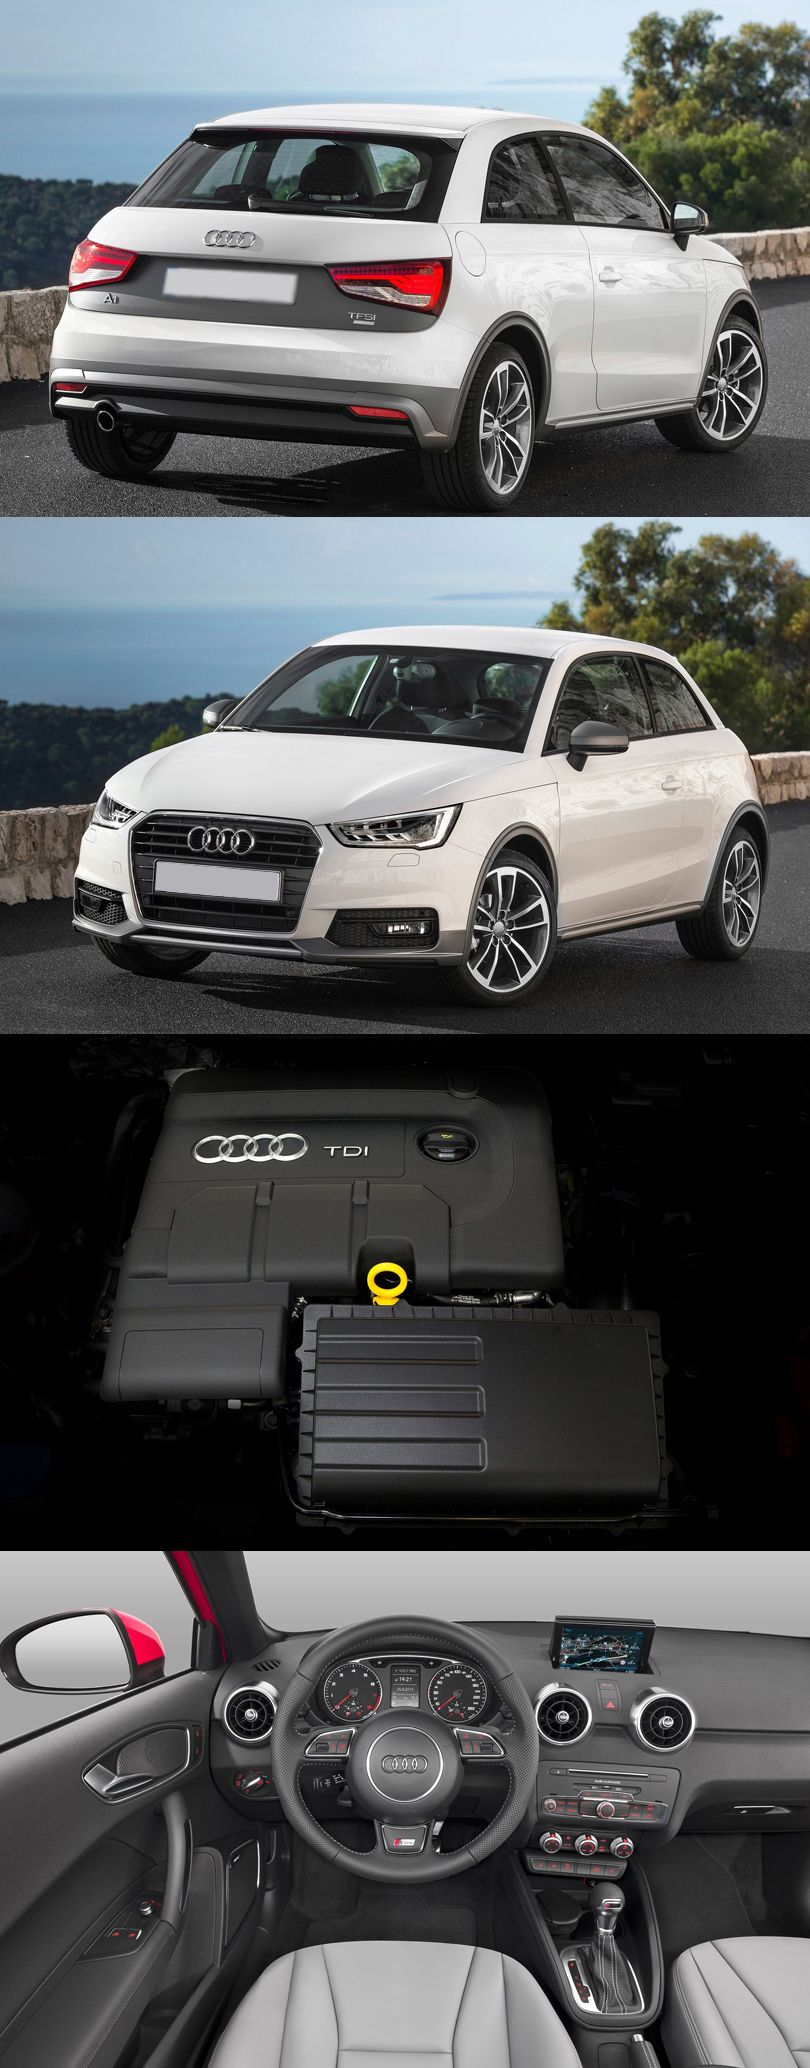 Audi a1 is a great hatchback of all times german car